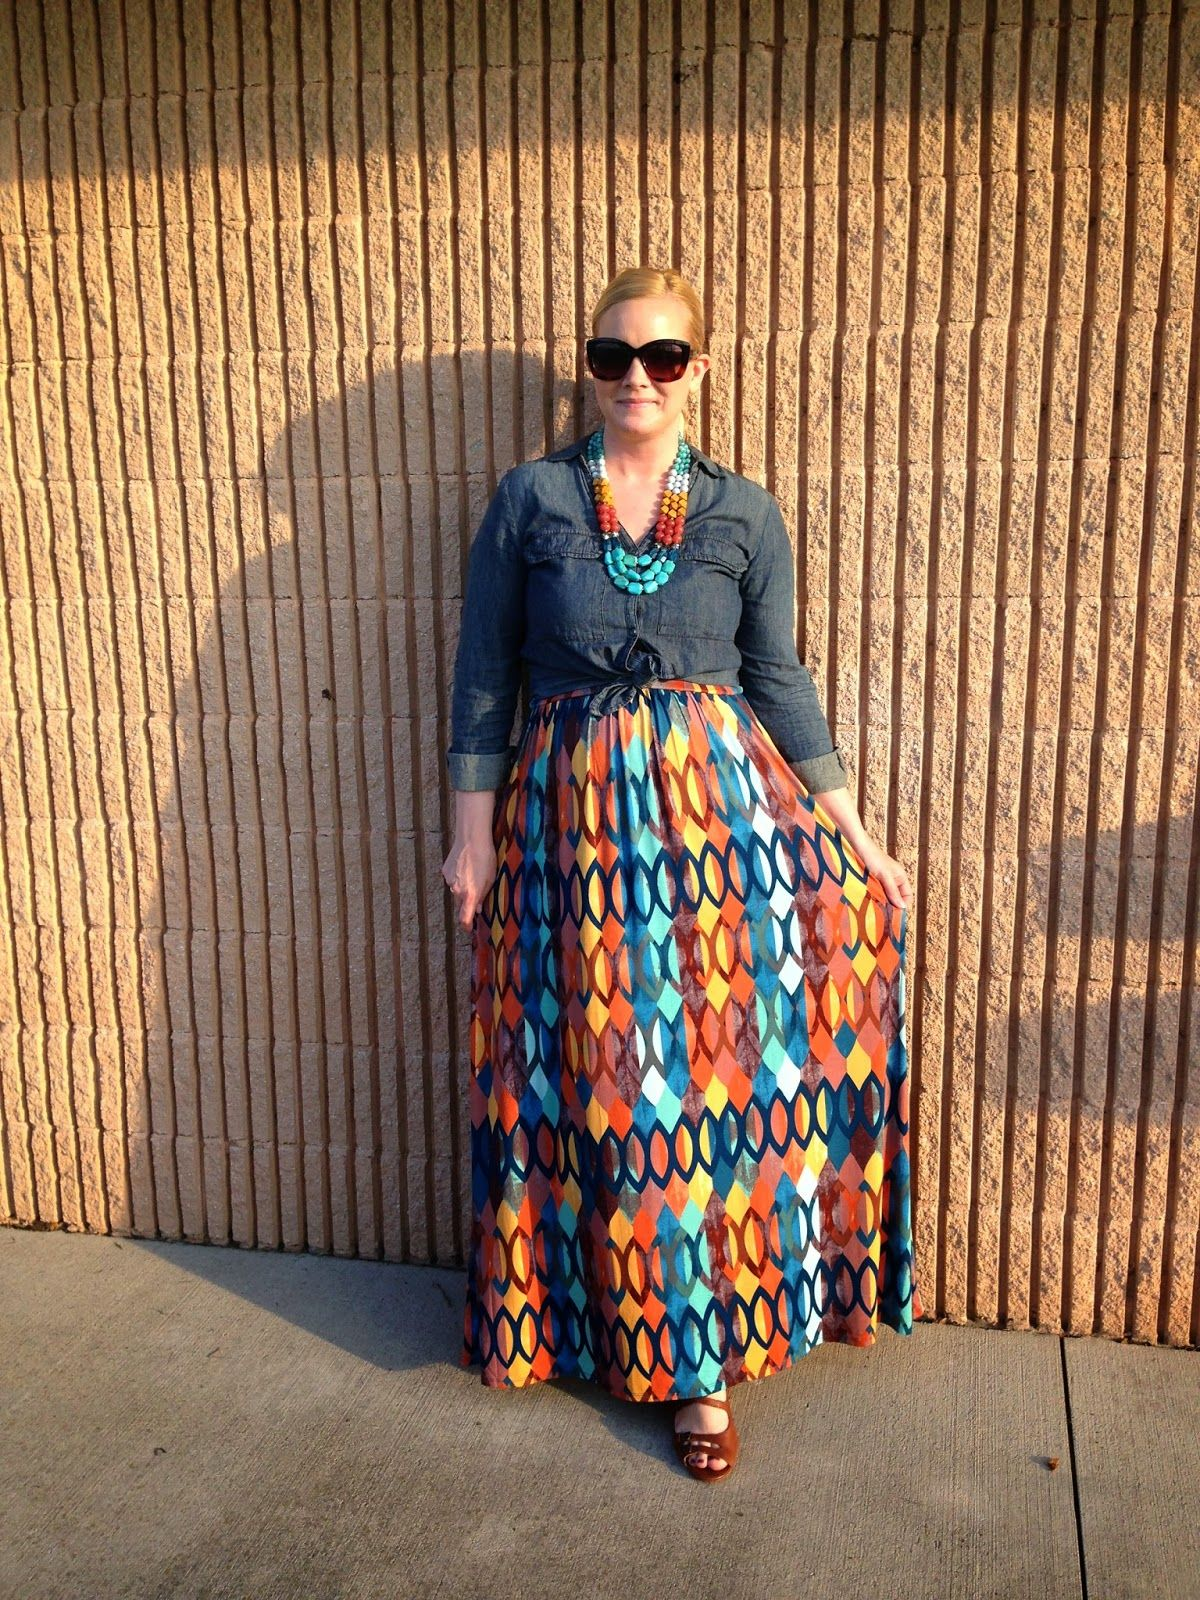 cceeafff43c18 The Peacock Fairy: Made For Each Other #ootd #wiw #momstyle #anthropologie  #maeve #noetzie